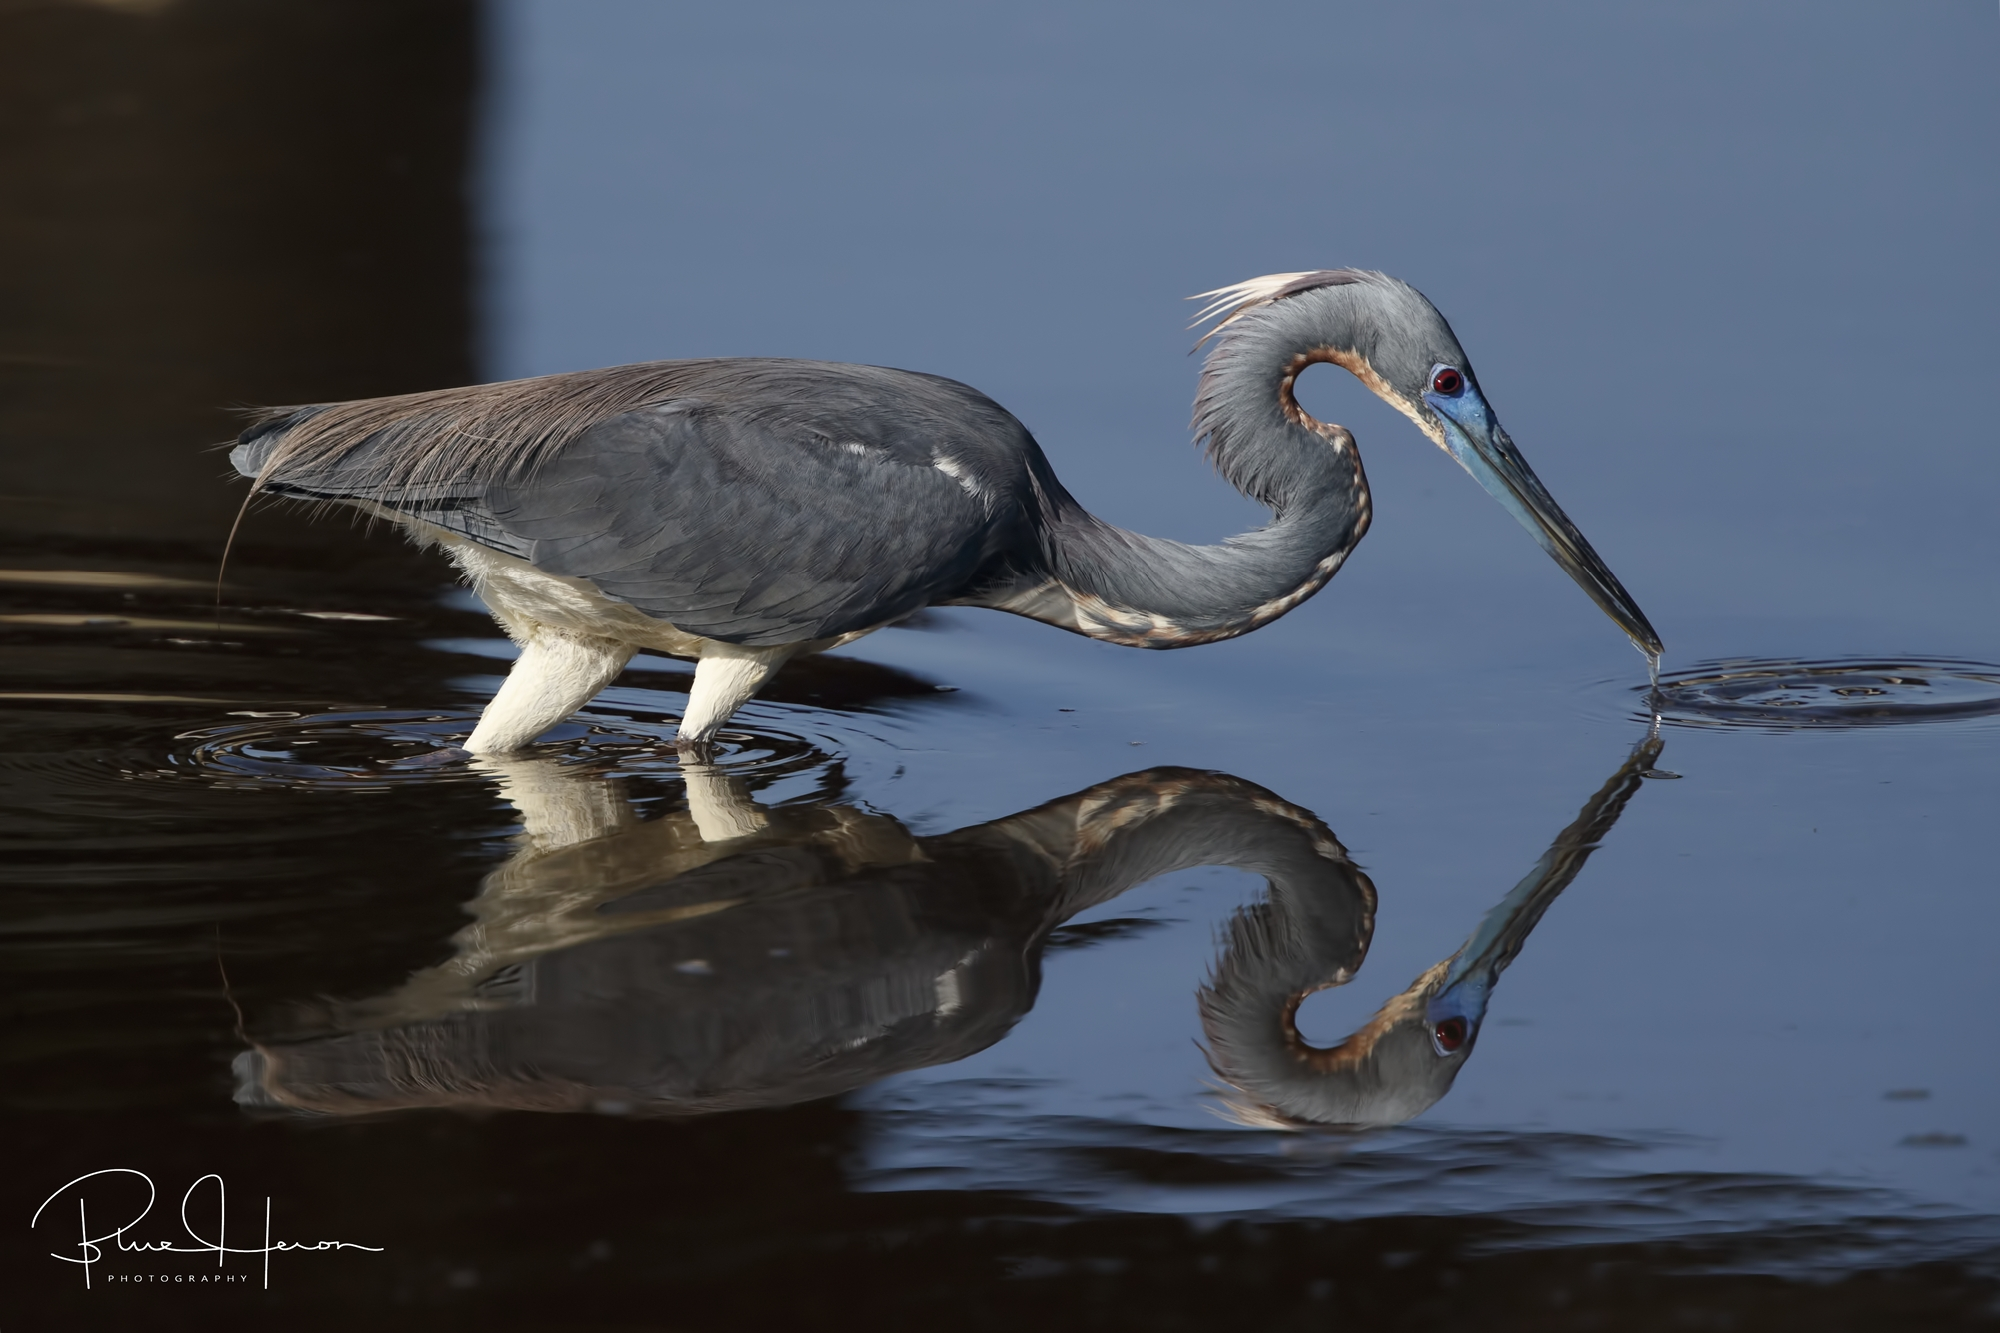 Got one! Tricolored Heron with minnow